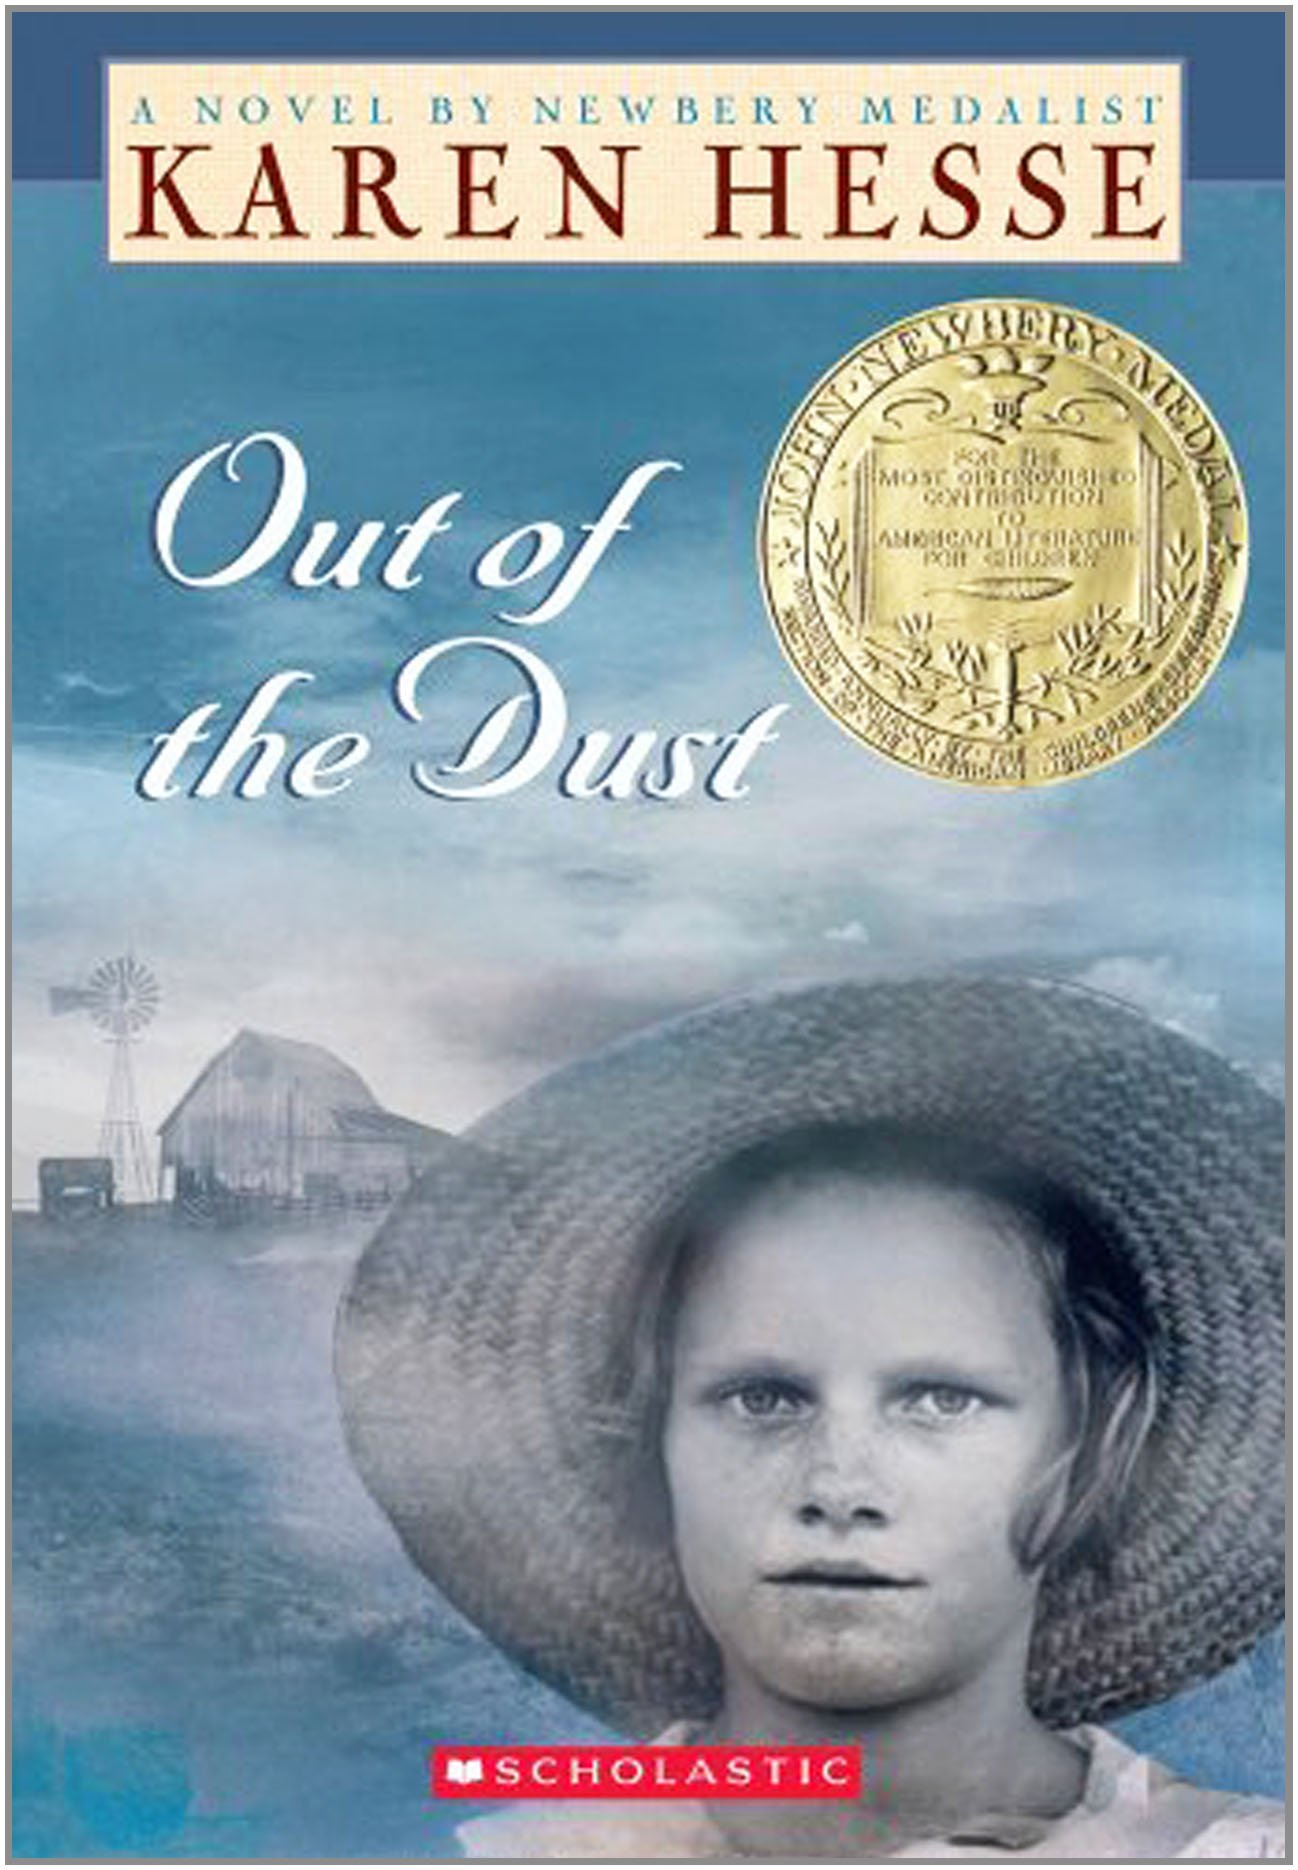 Amazon.com: Out of the Dust (9780590371254): Karen Hesse: Books